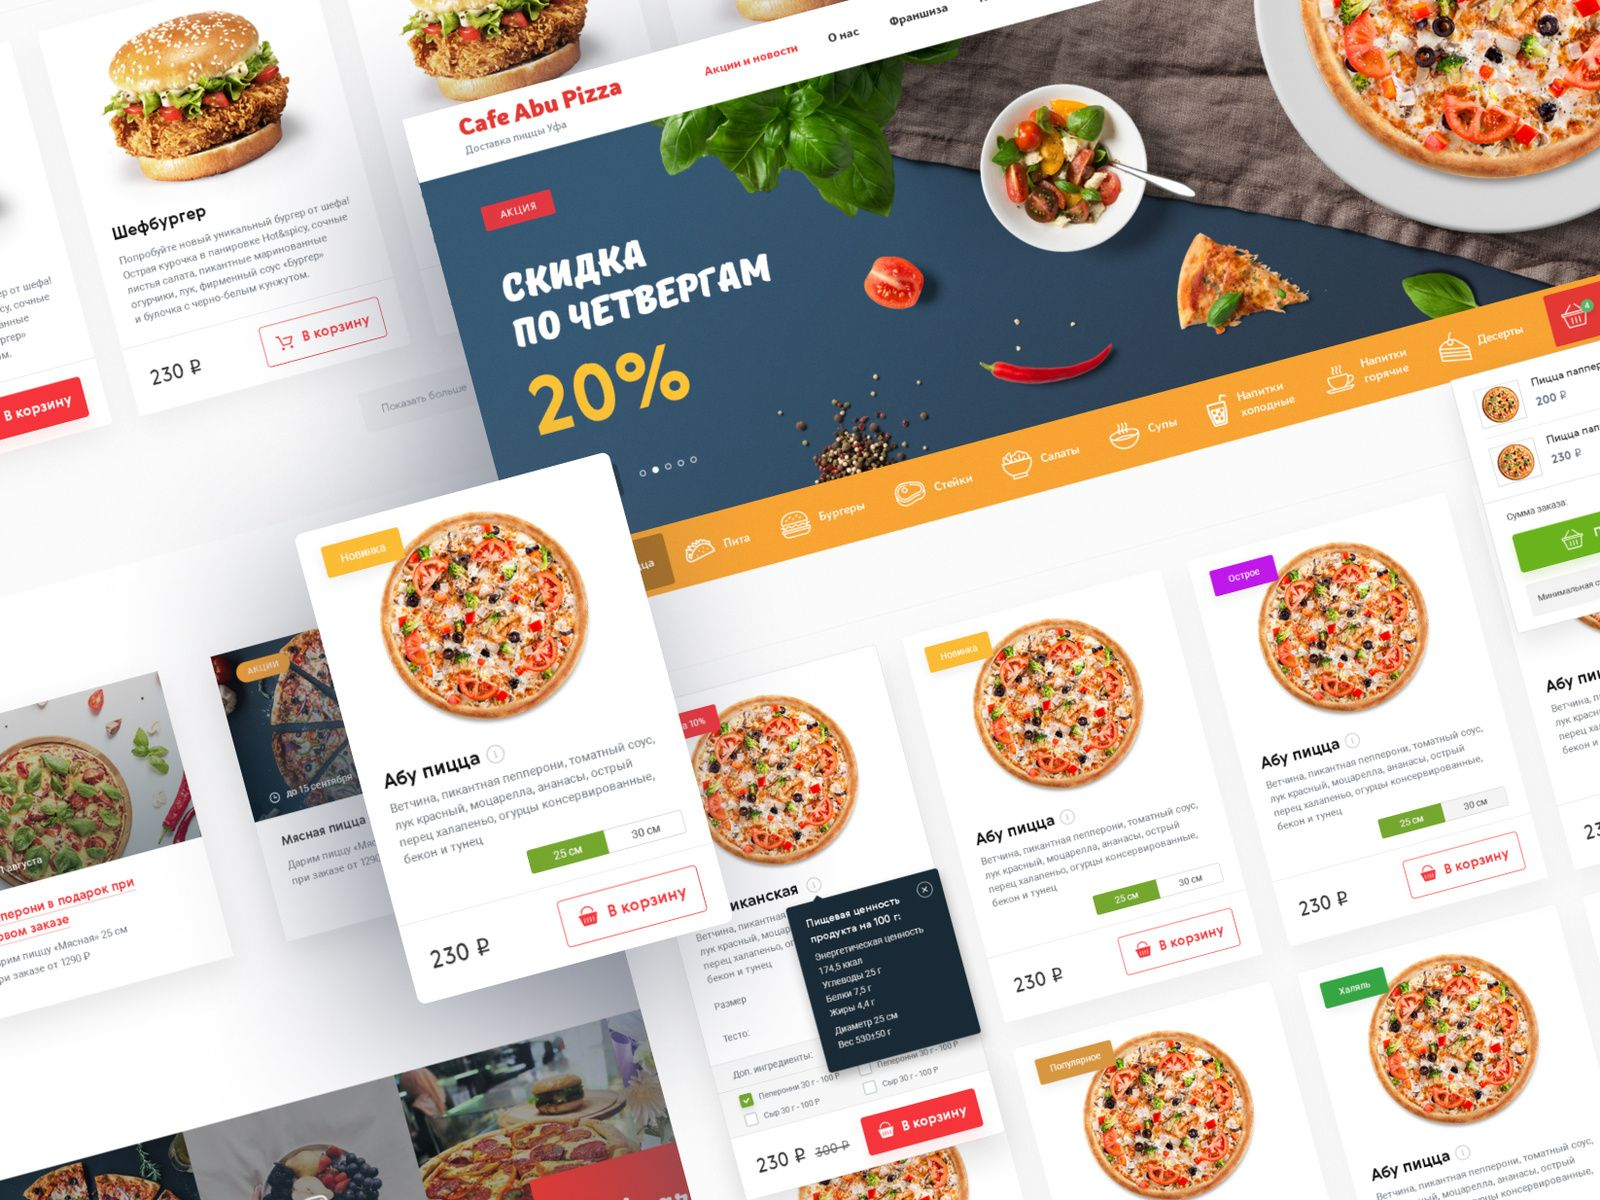 Cafe Abu Pizza Pizza Delivery Website Design Food Delivery Website Pizza Delivery Halal Recipes